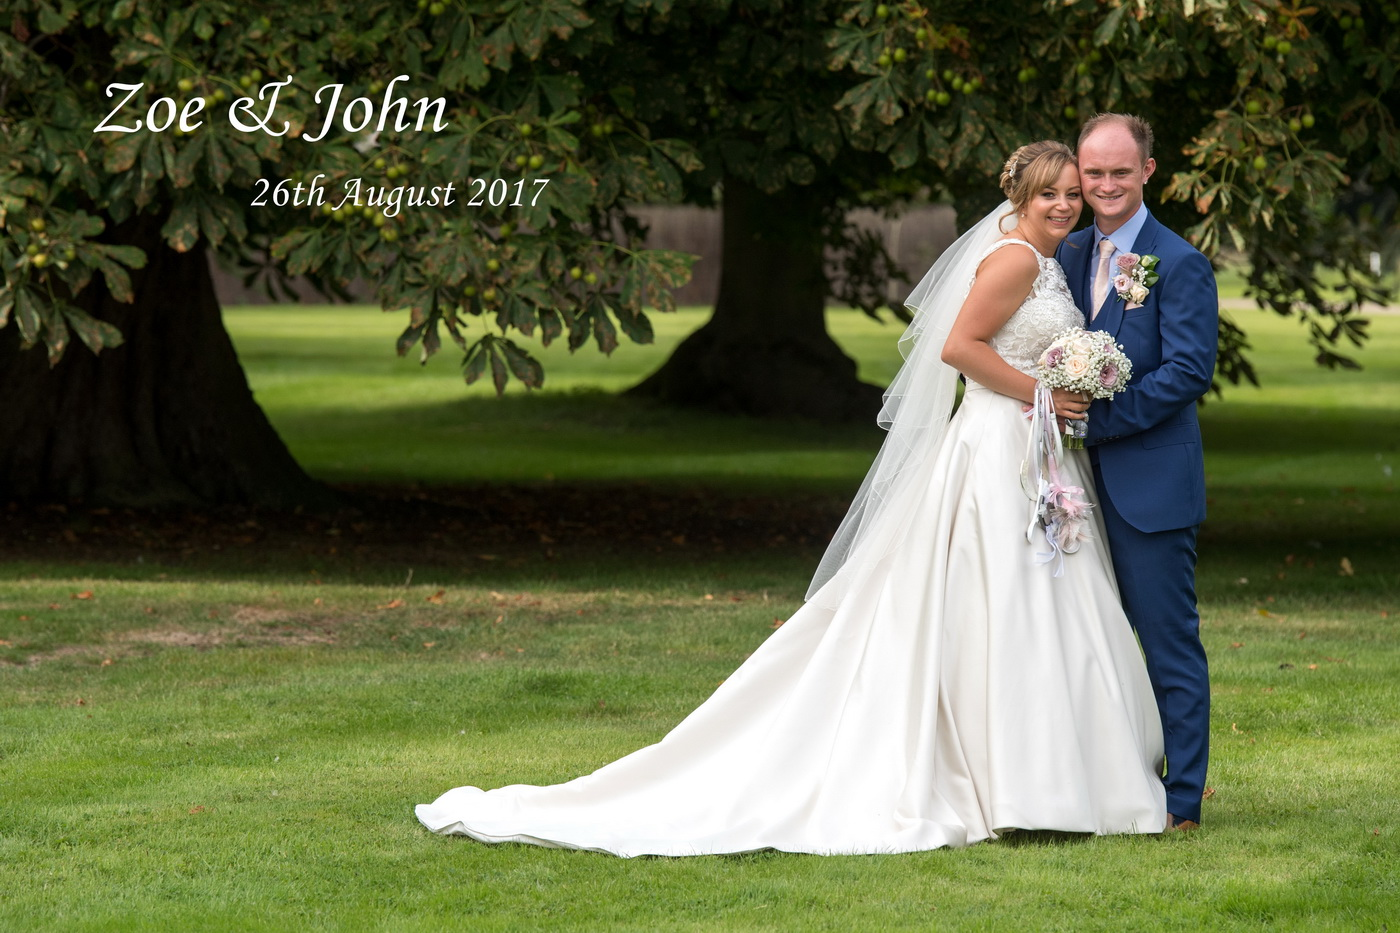 Wedding Photography at Prested Hall